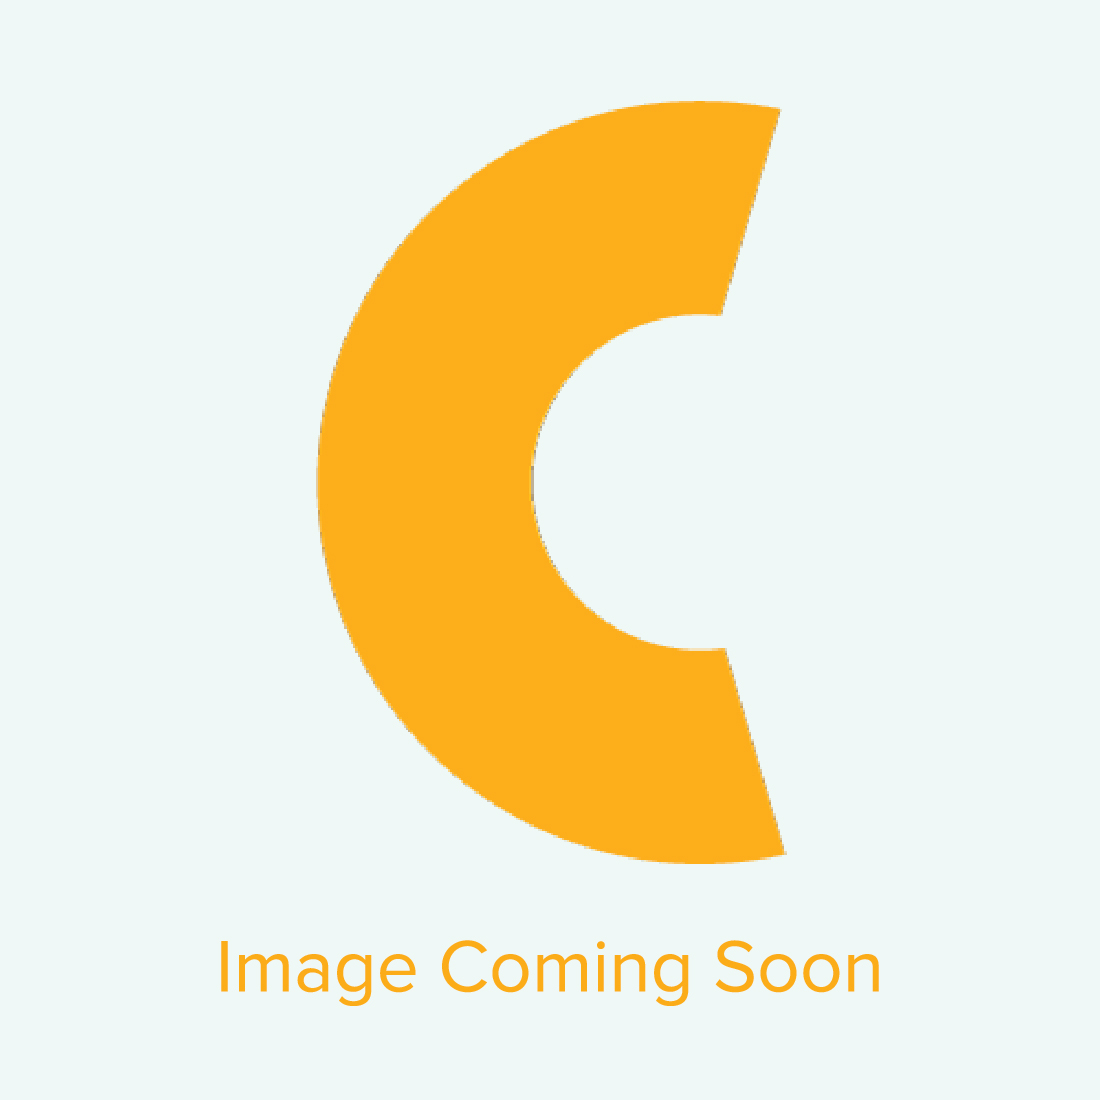 "Siser EasyWeed Heat Transfer Vinyl - 12"" x 5 yards"